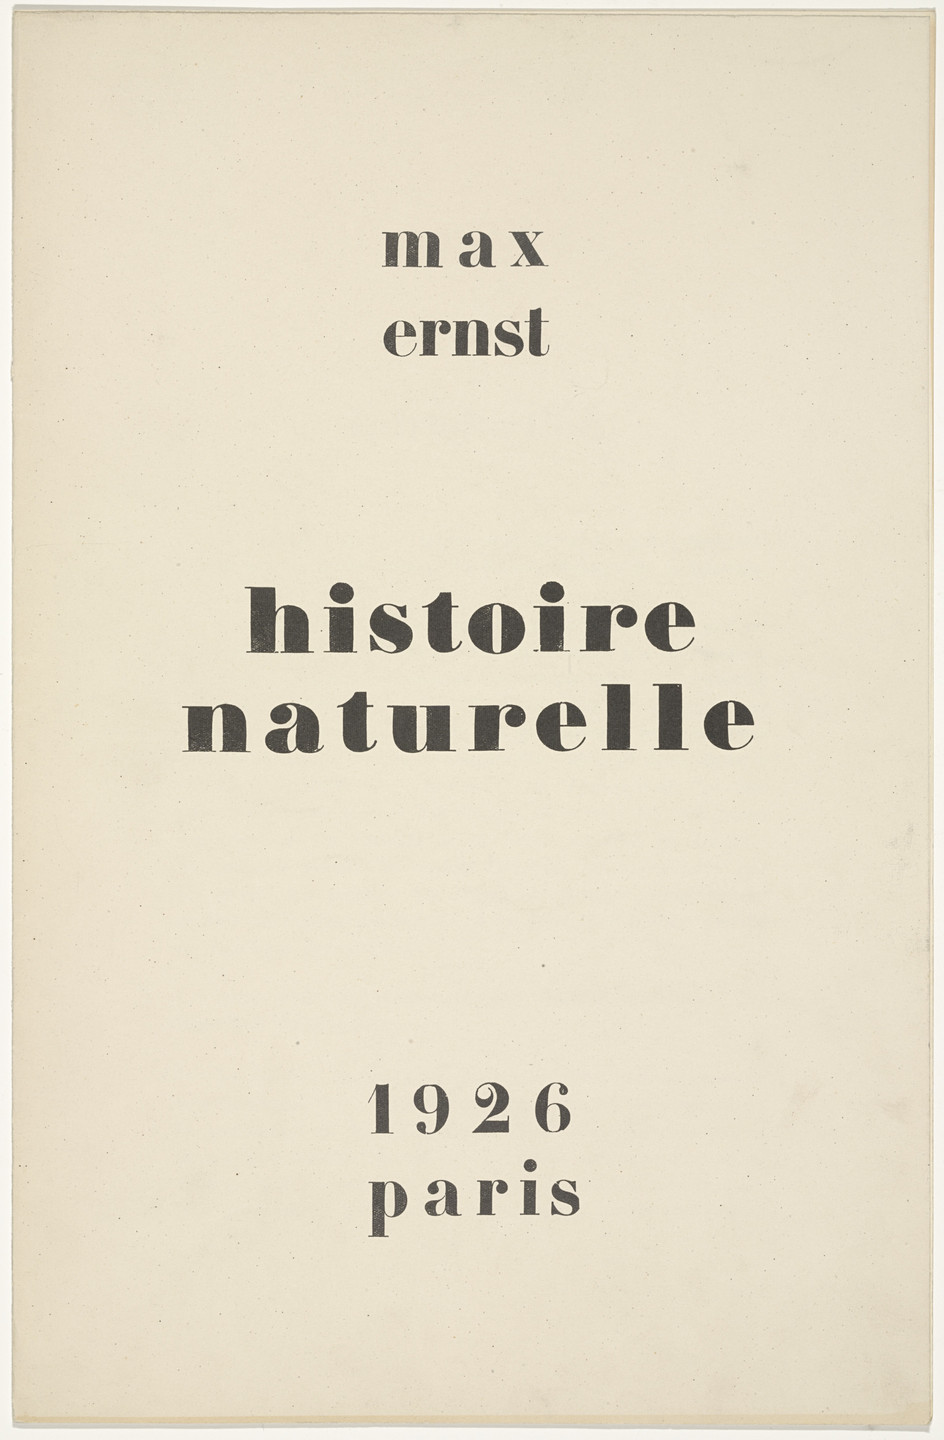 Max Ernst. Natural History (Histoire naturelle). c. 1925, published 1926